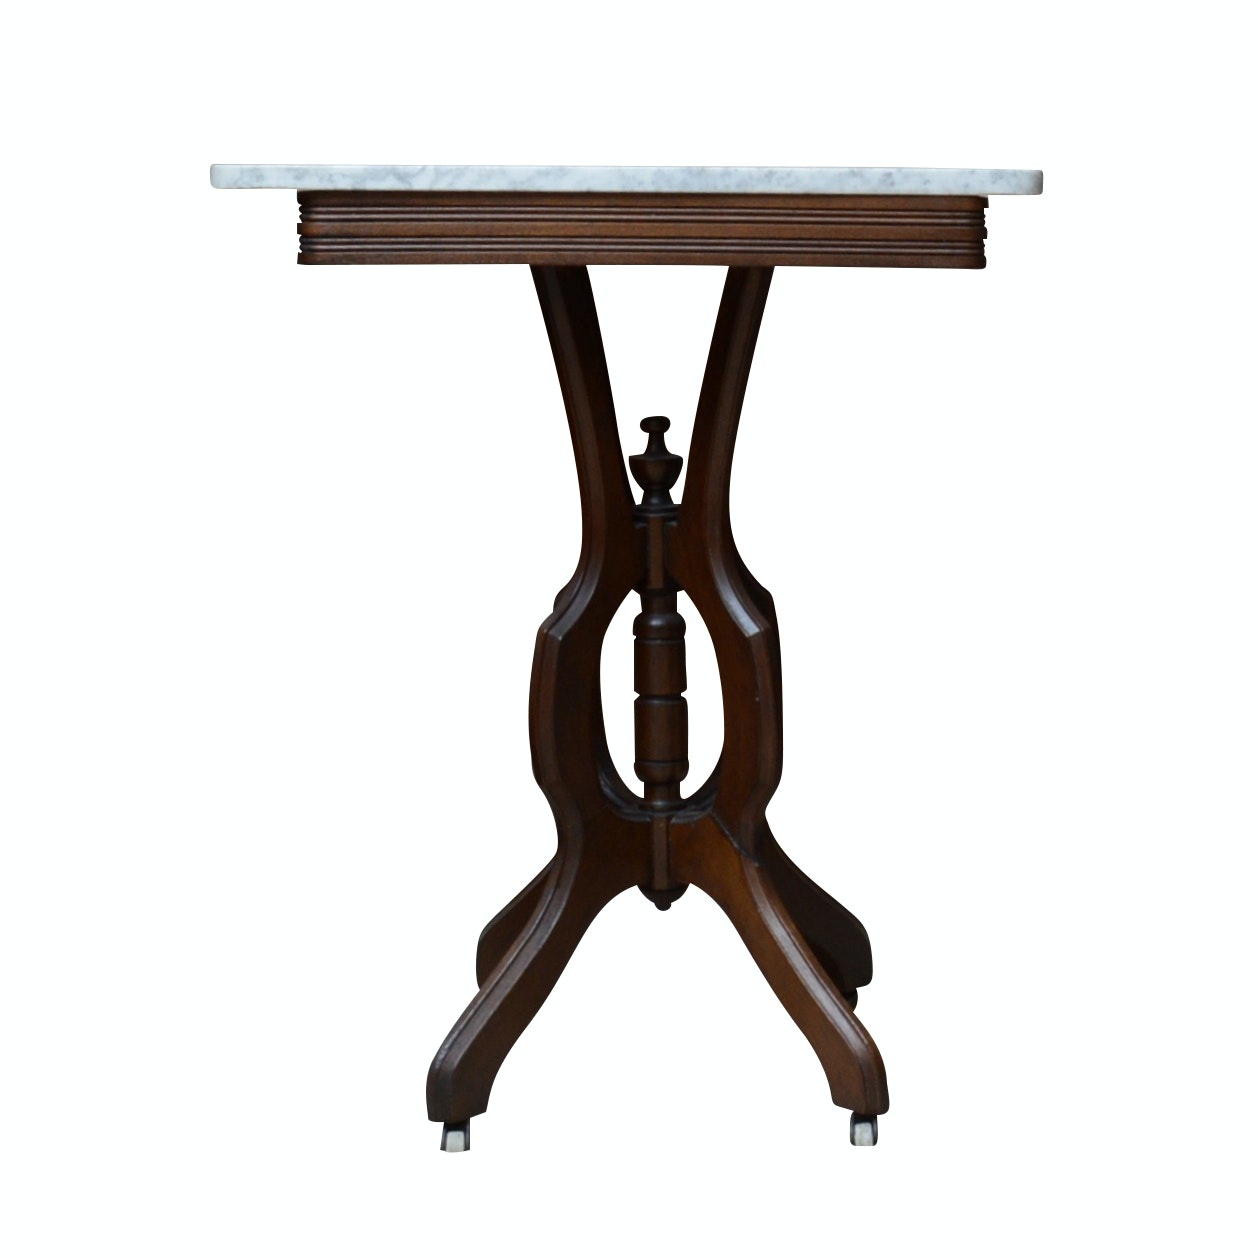 Eastlake Style Victorian Walnut Table with Marble Top, Circa 1890